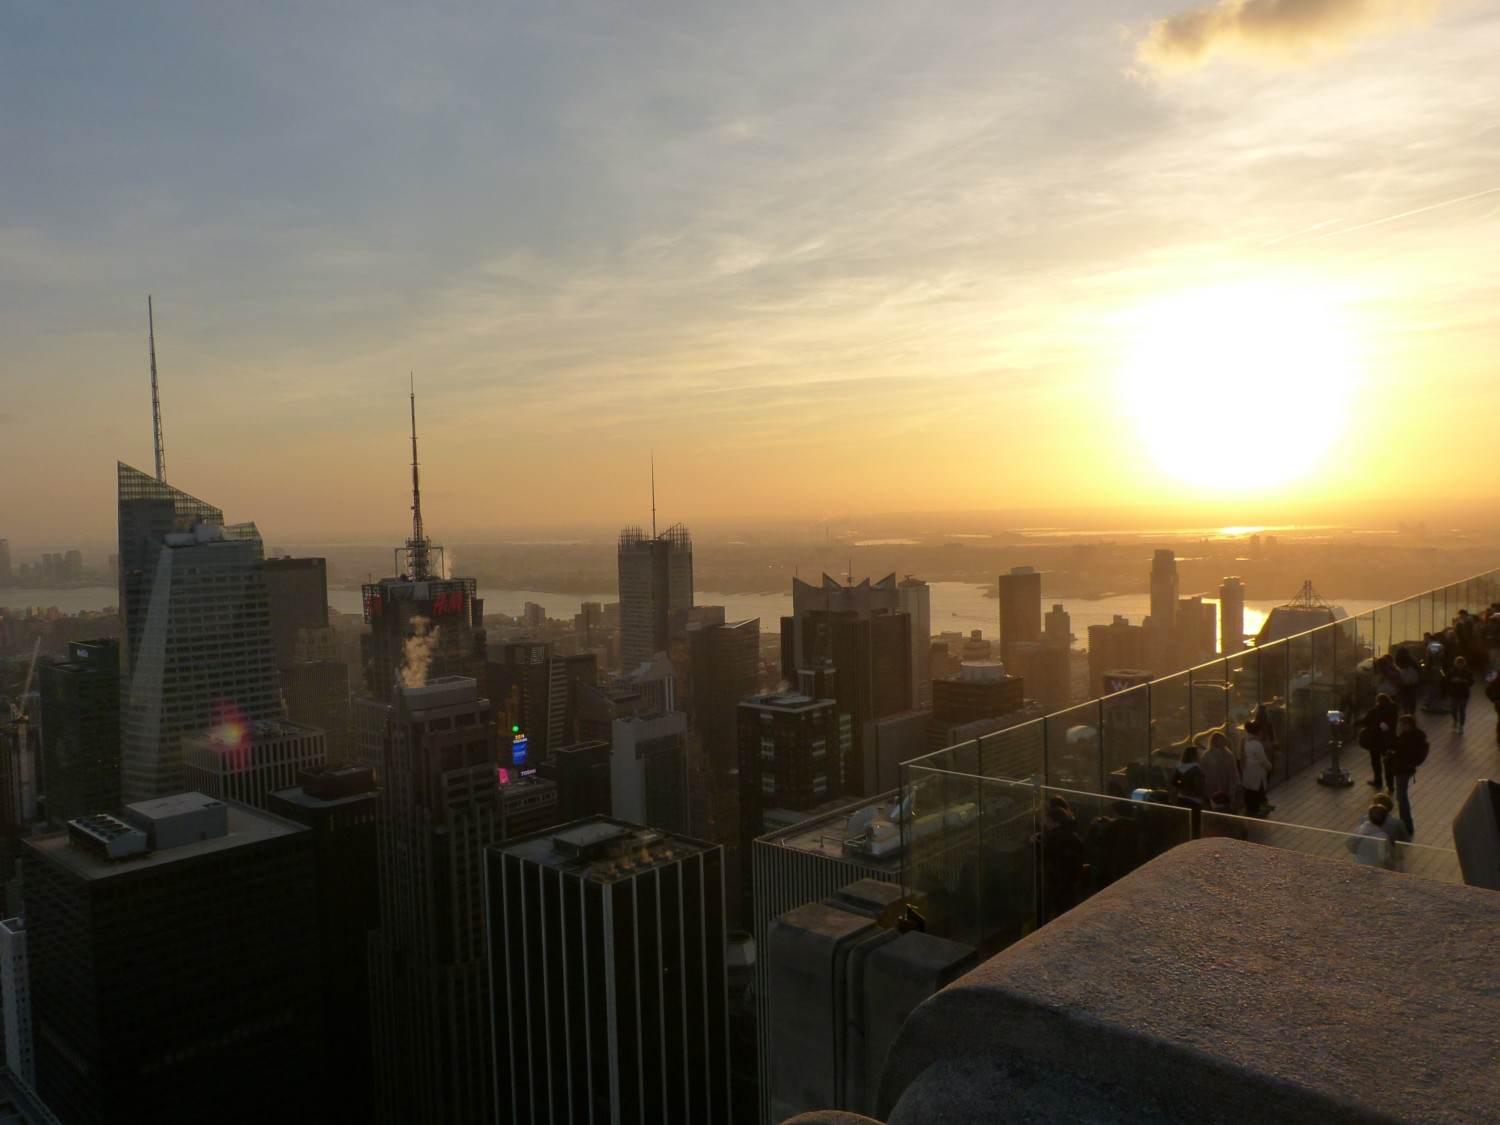 sonnenuntergang-rockefeller-center-new-york-city